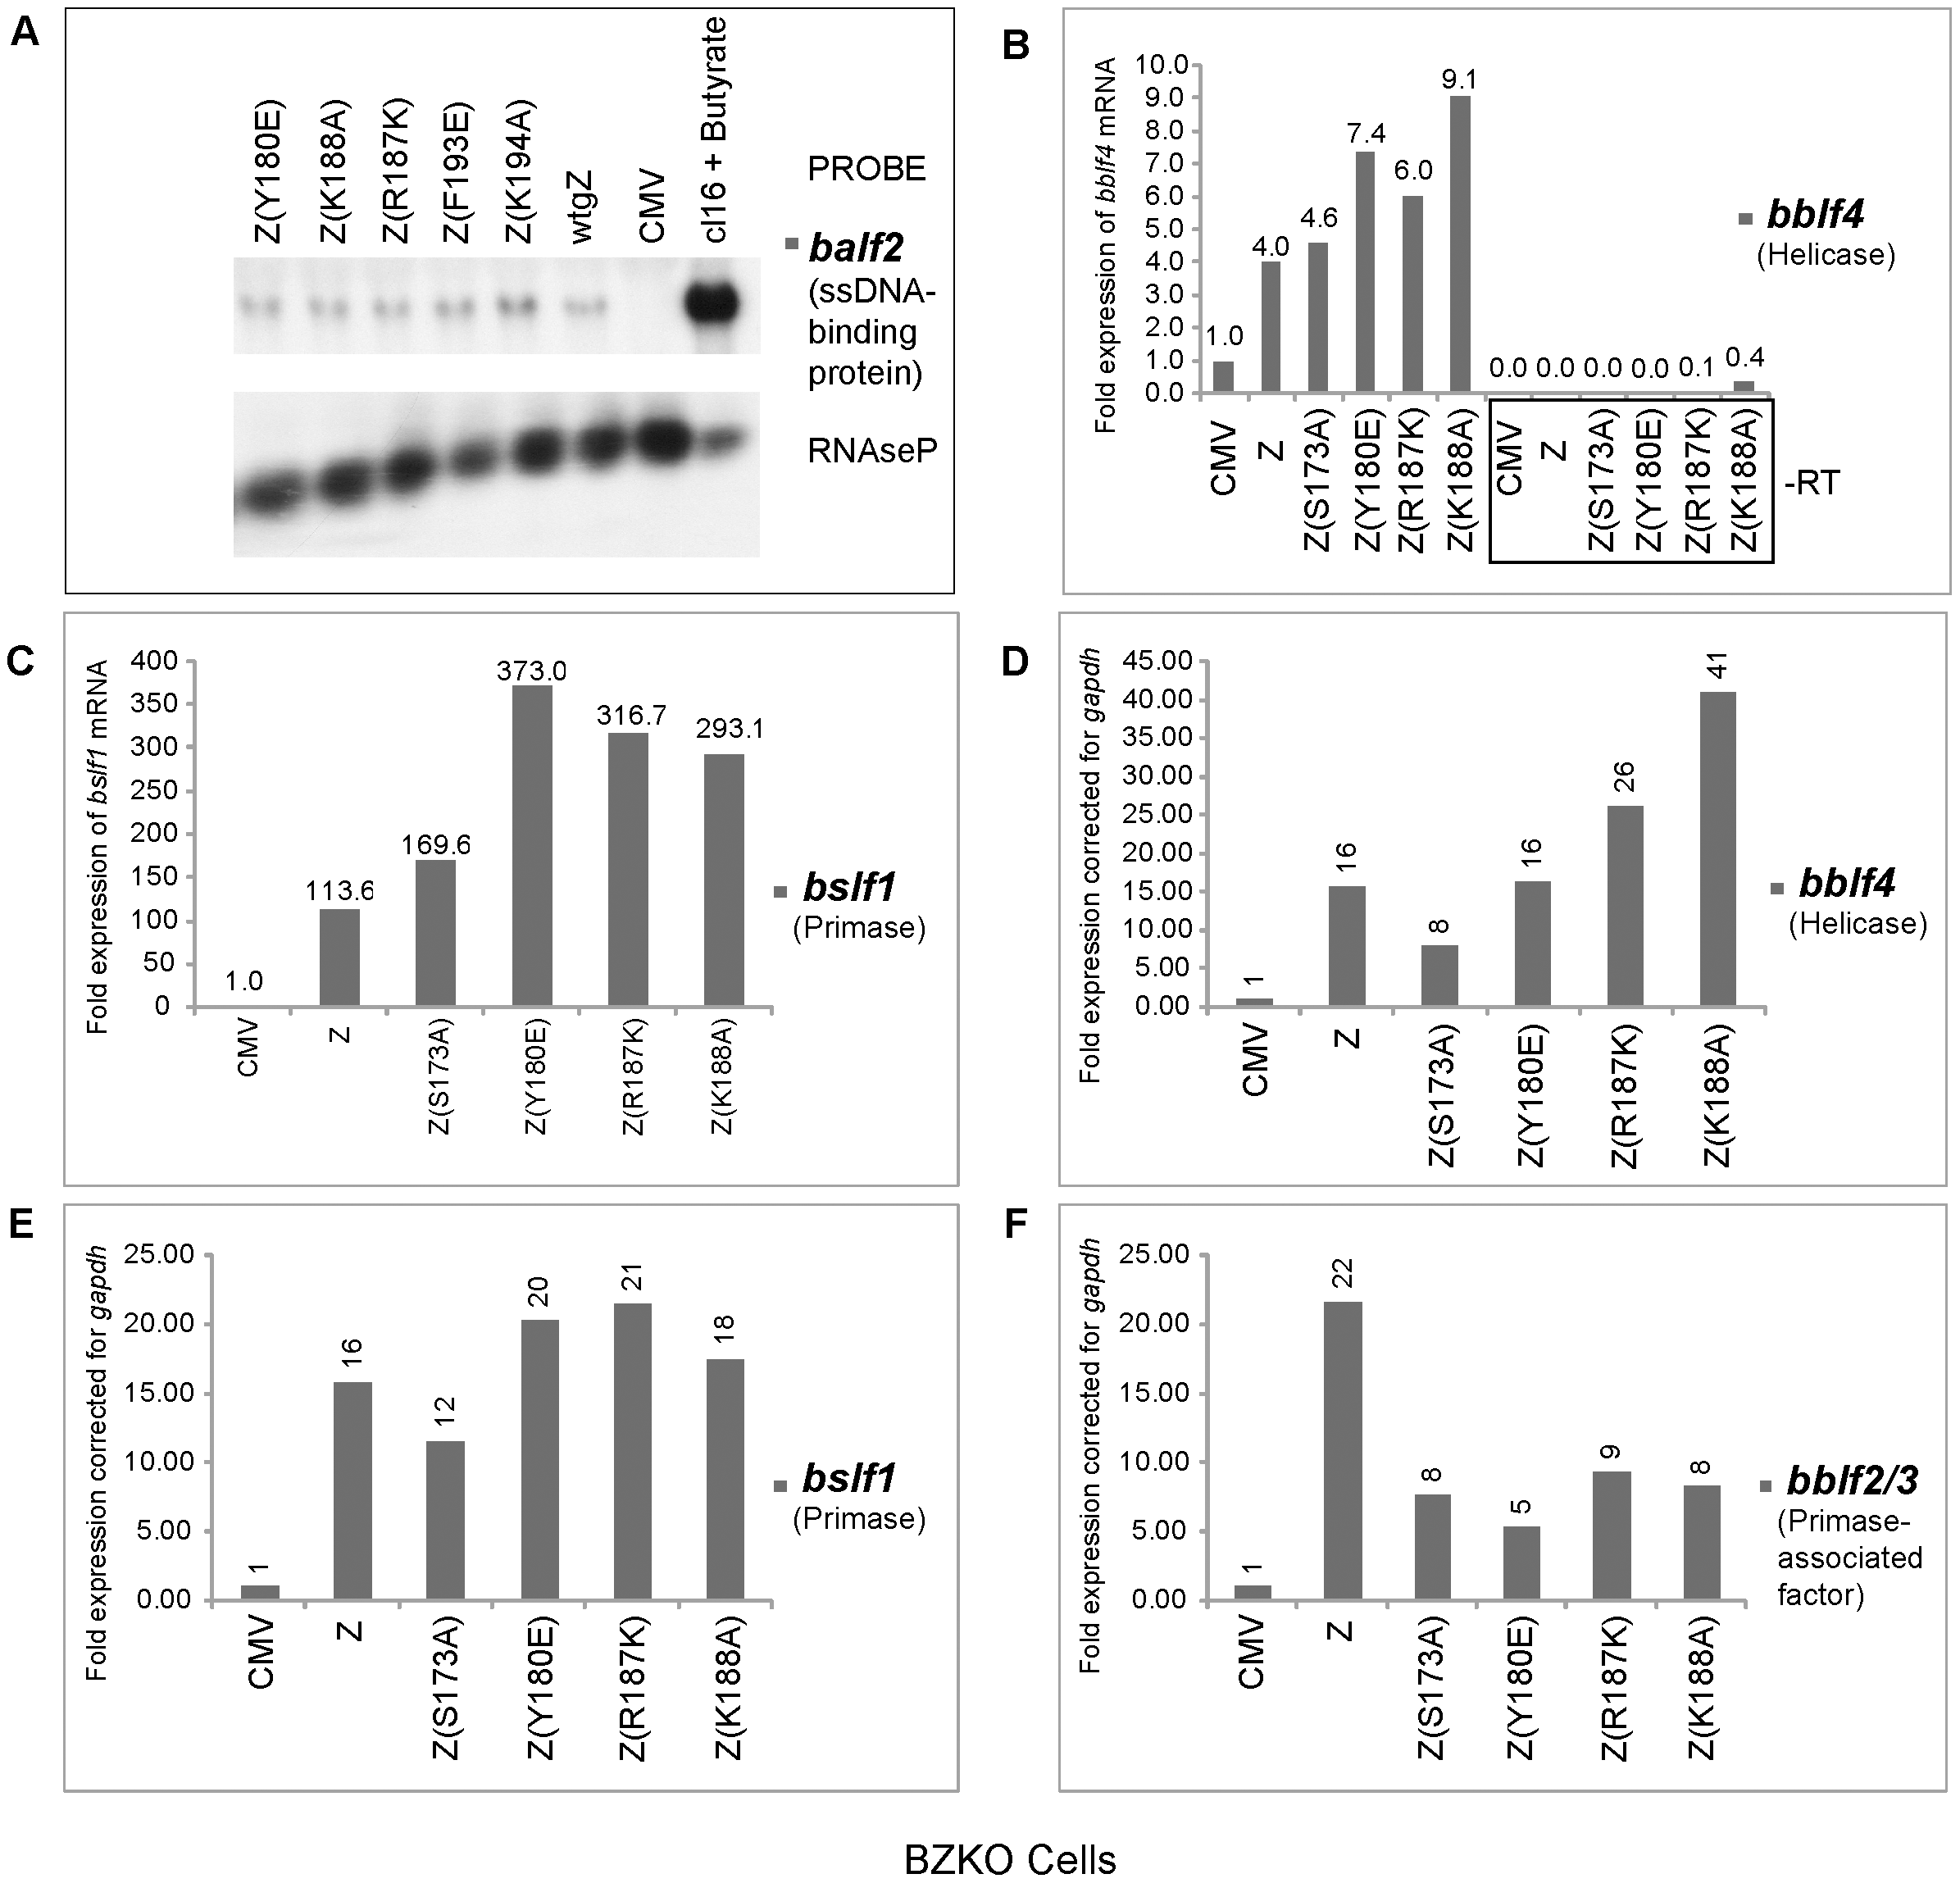 ZEBRA replication defective (RD) mutants are competent at activating expression of EBV genes encoding the viral lytic replication machinery.